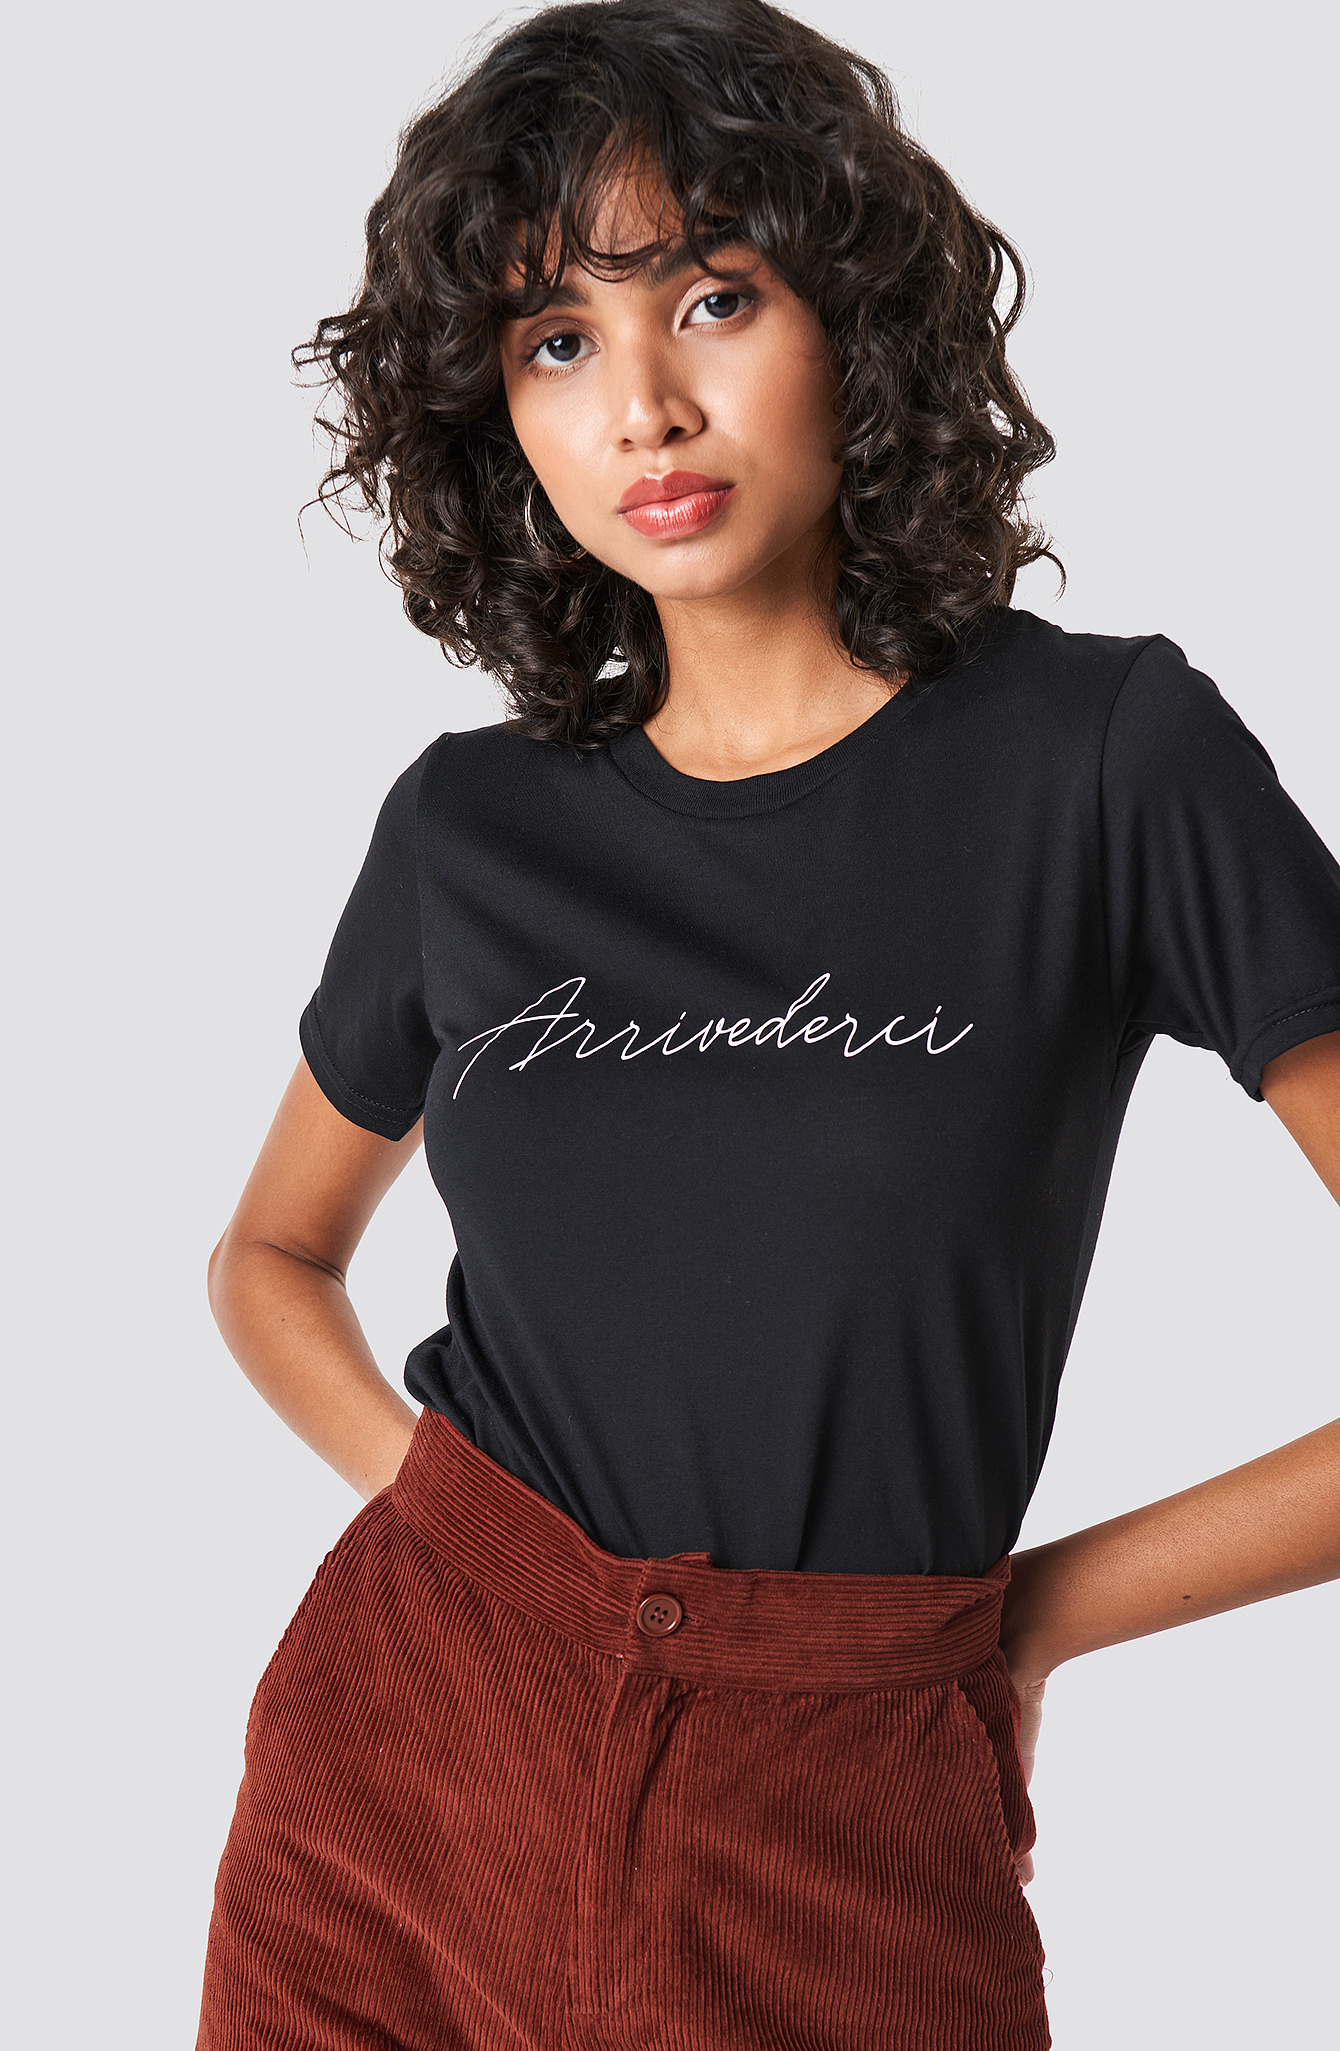 COLOURFUL REBEL Arrivederci Classic Tee - Black